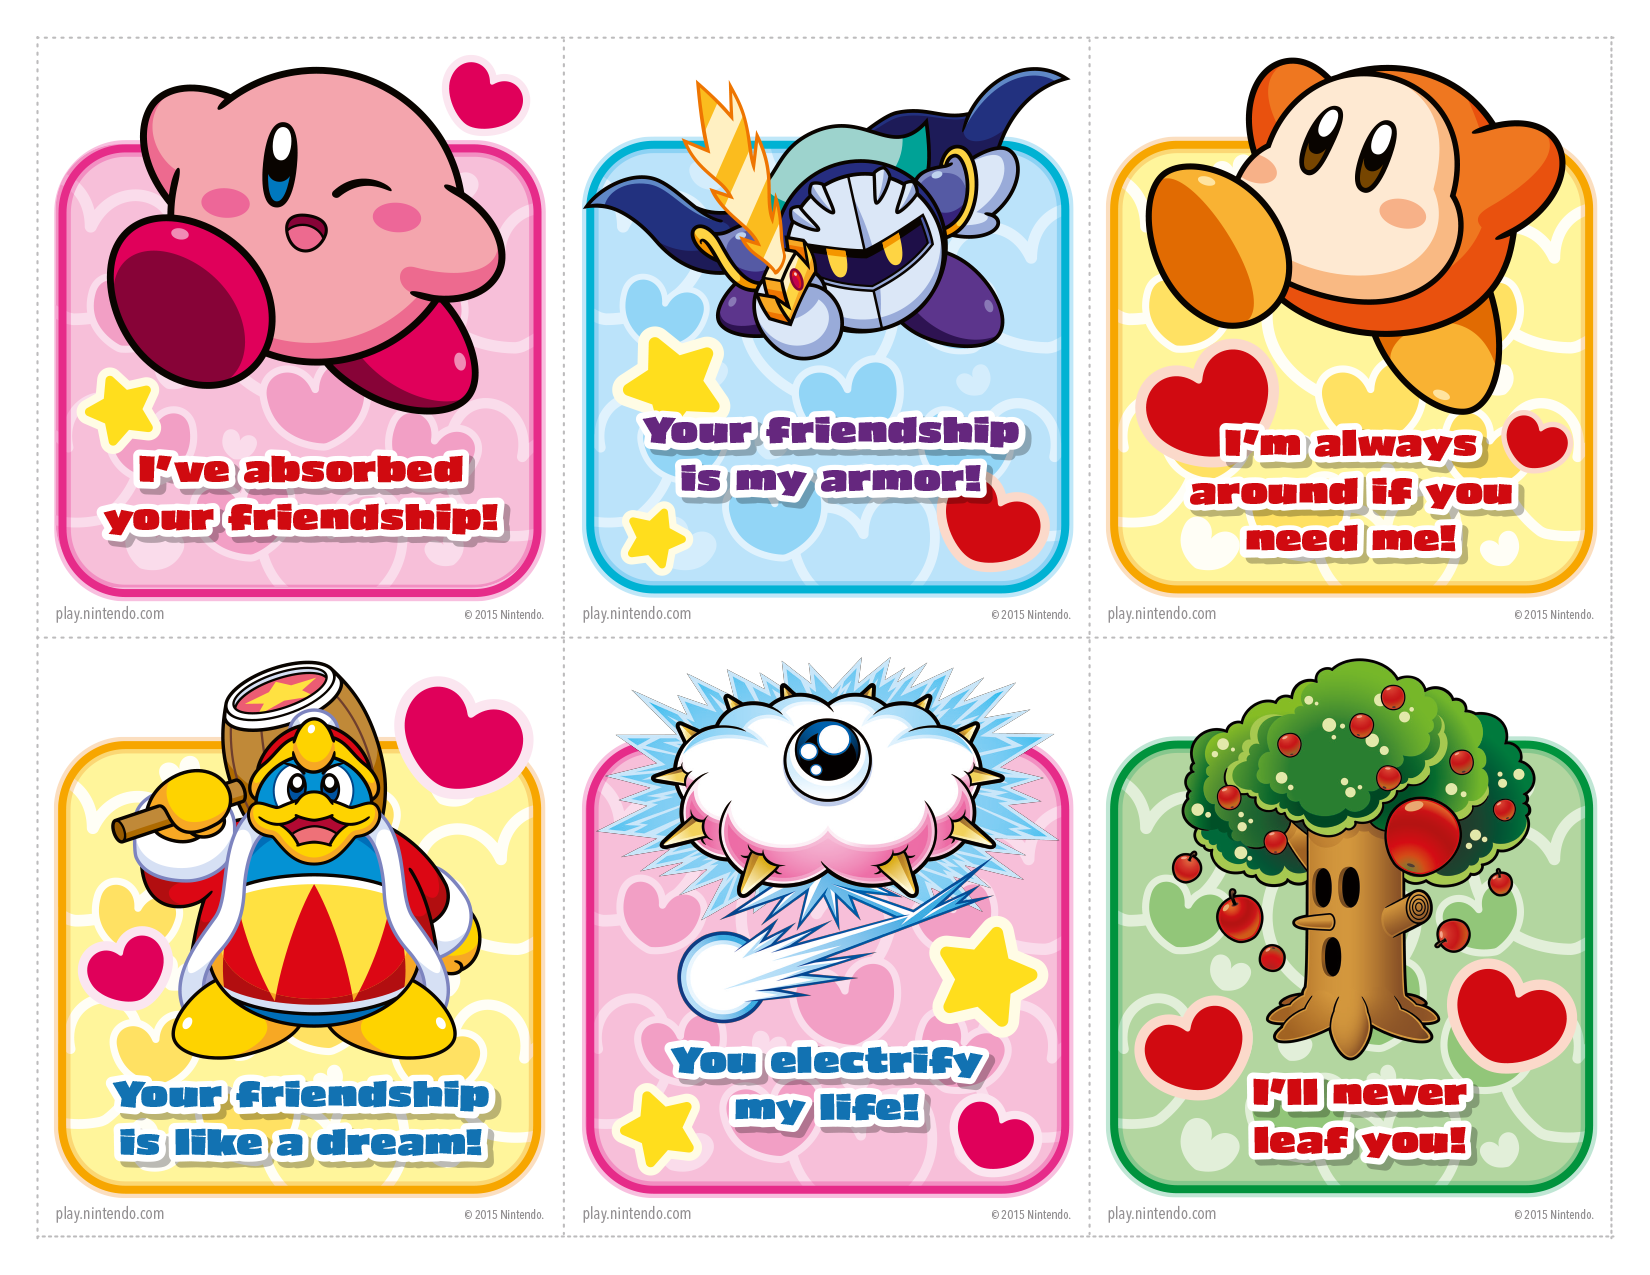 image about I Choo Choo Choose You Printable Card referred to as Nintendo publishes a mounted of printable Valentines Working day playing cards